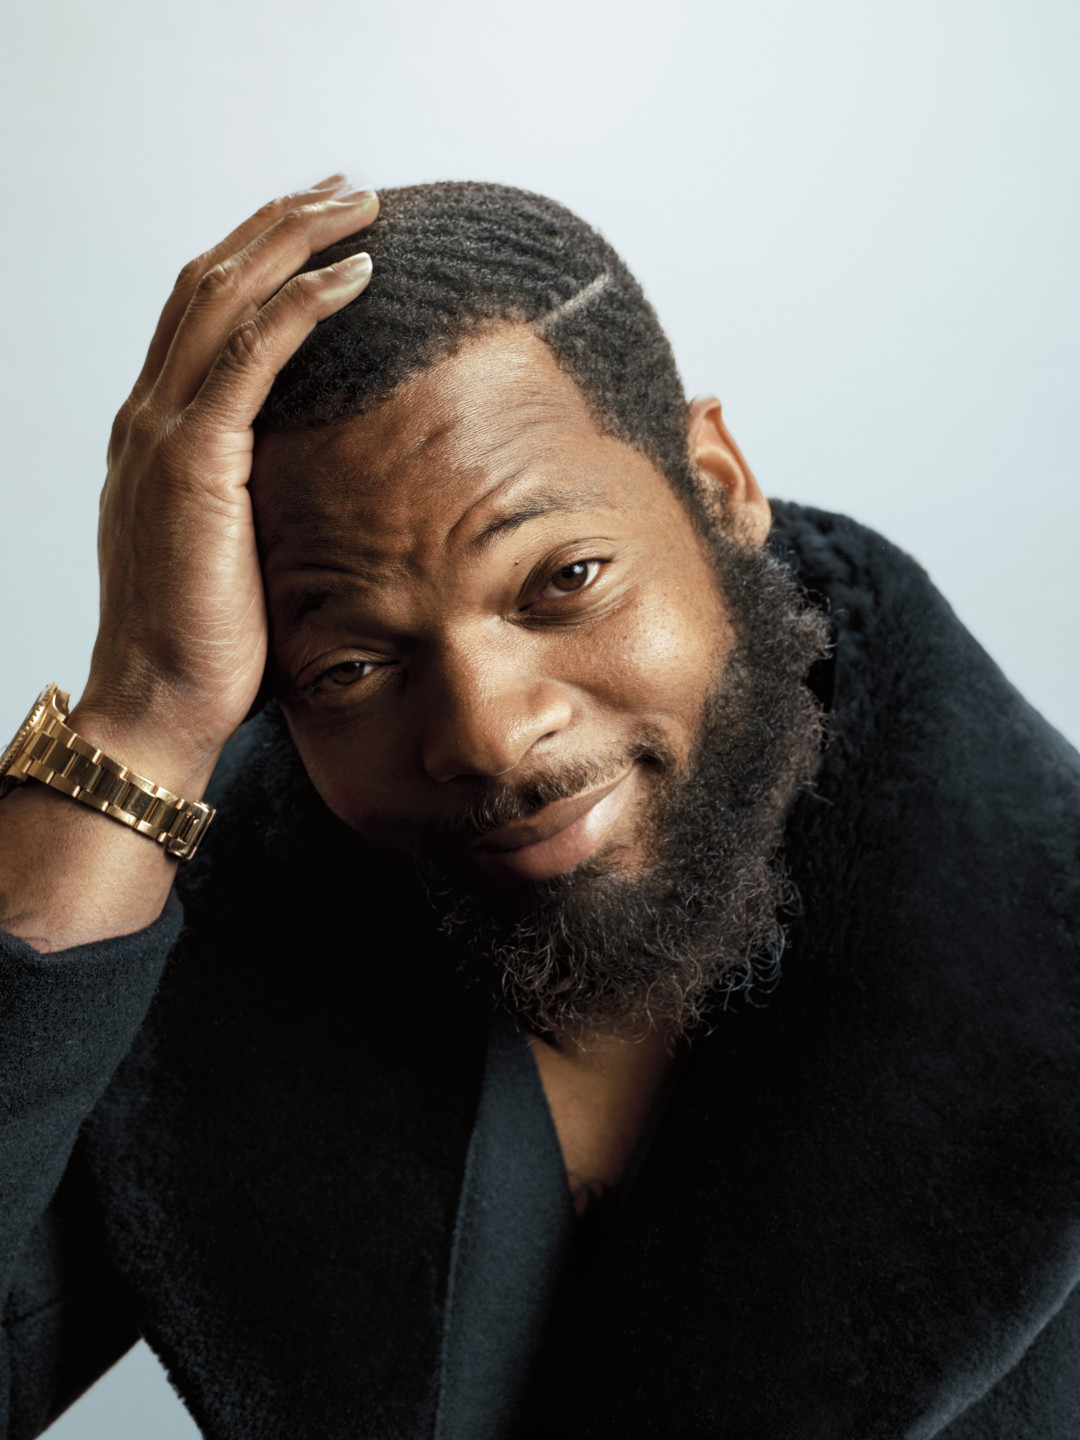 The Seahawks Michael Bennett Tells It Like It Is